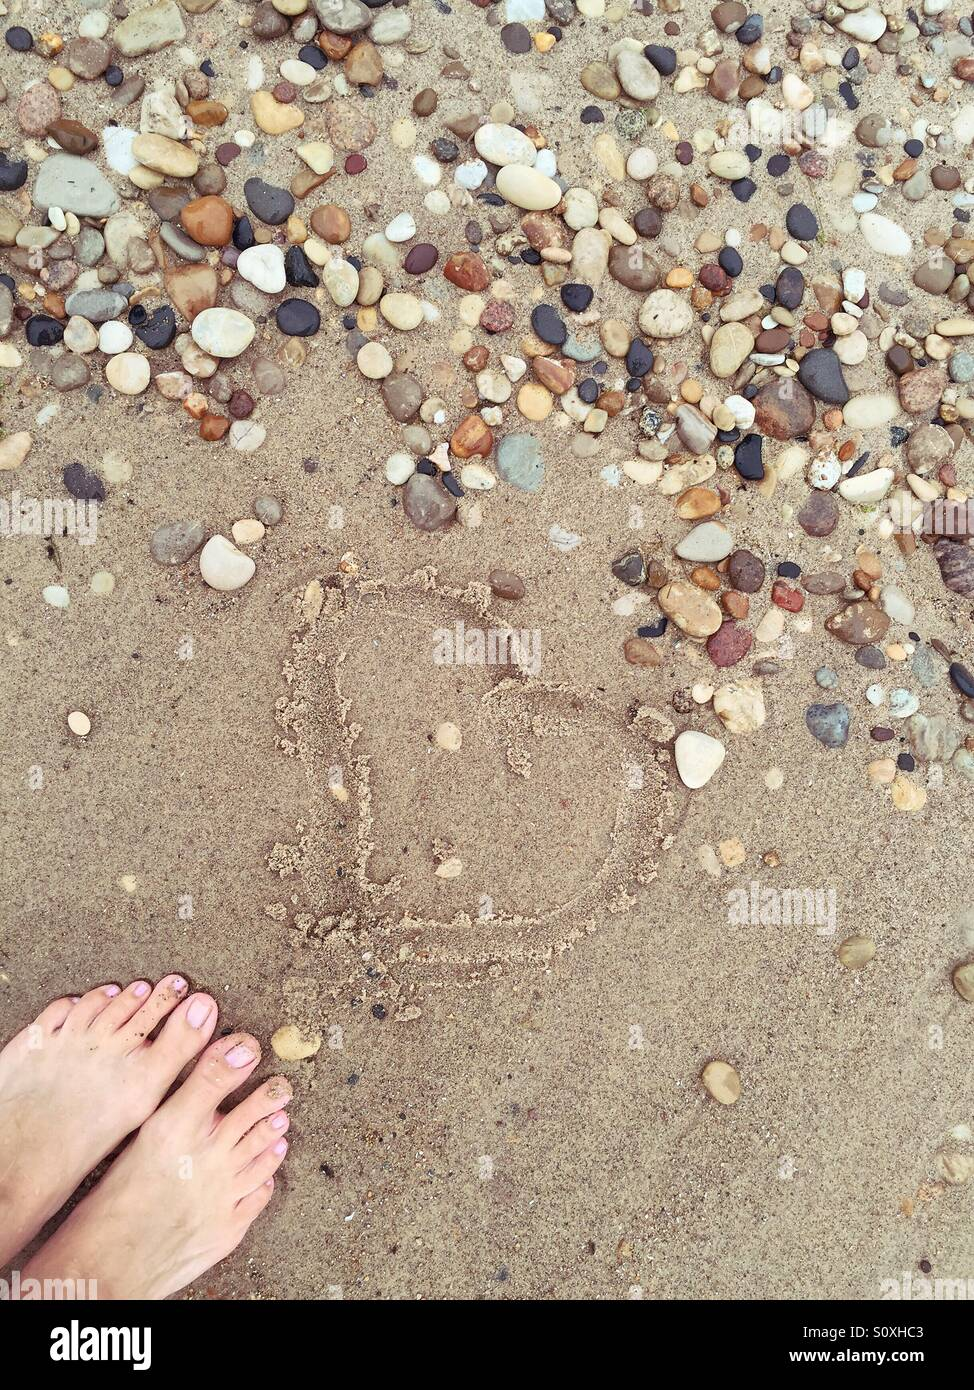 Heart traced into the wet sand on a beach, framed by beach pebbles and bare feet - Stock Image